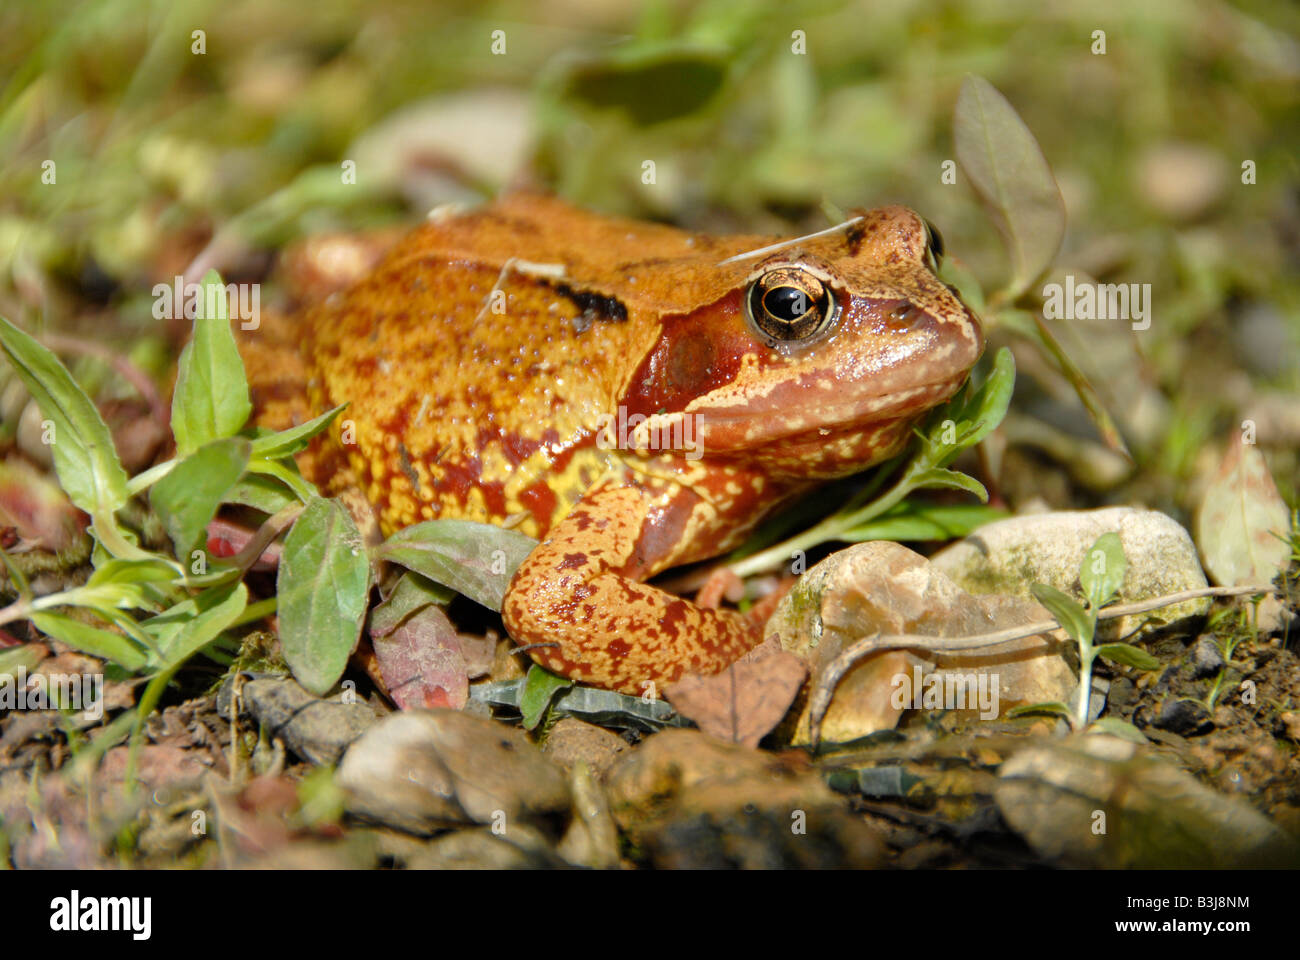 Common Or Garden English Frog Or Toad Stock Photo Royalty Free